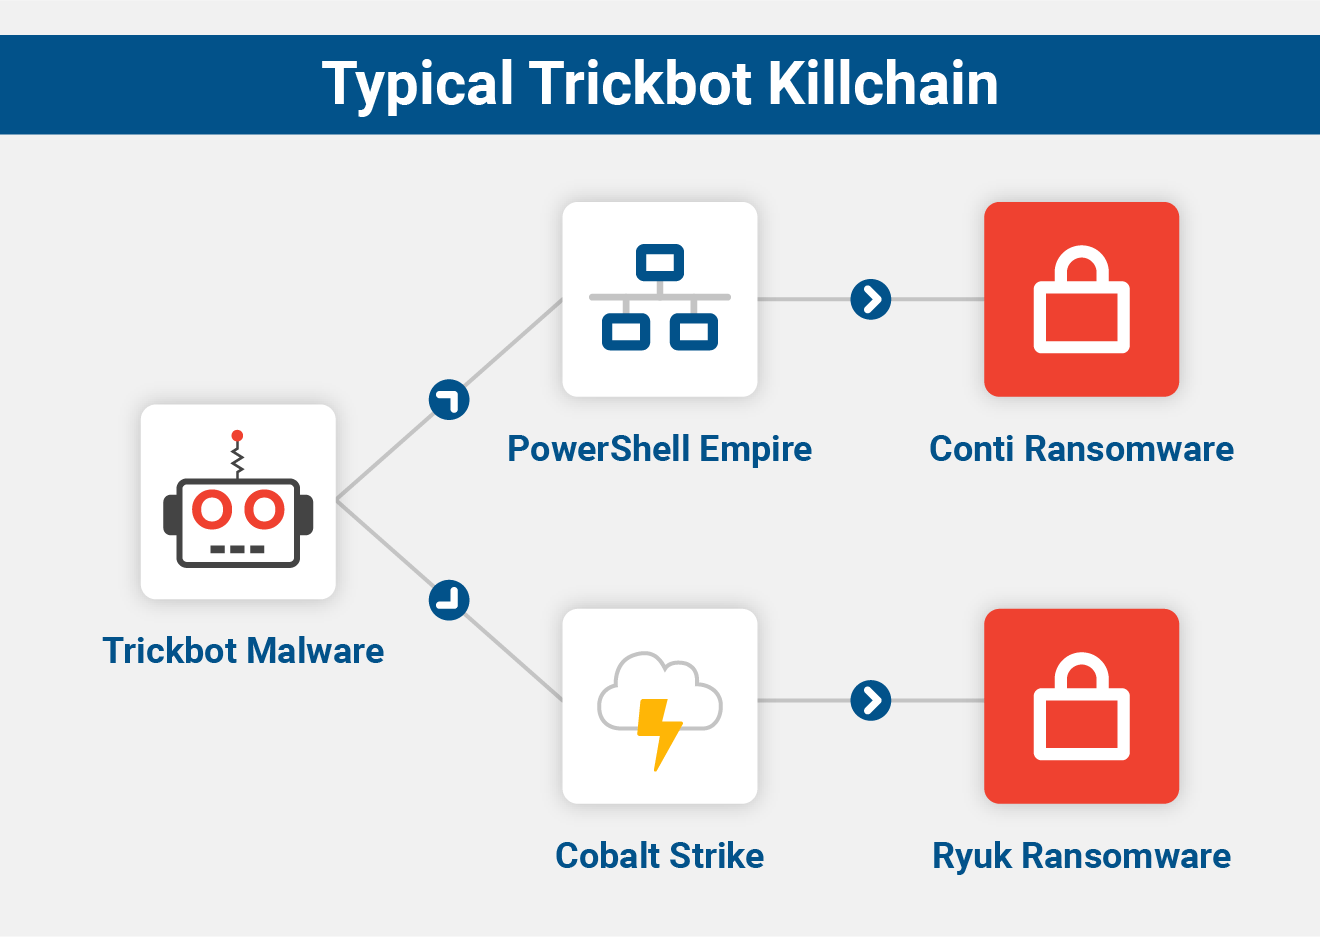 TrickBoot feature allows TrickBot bot to run UEFI attacks